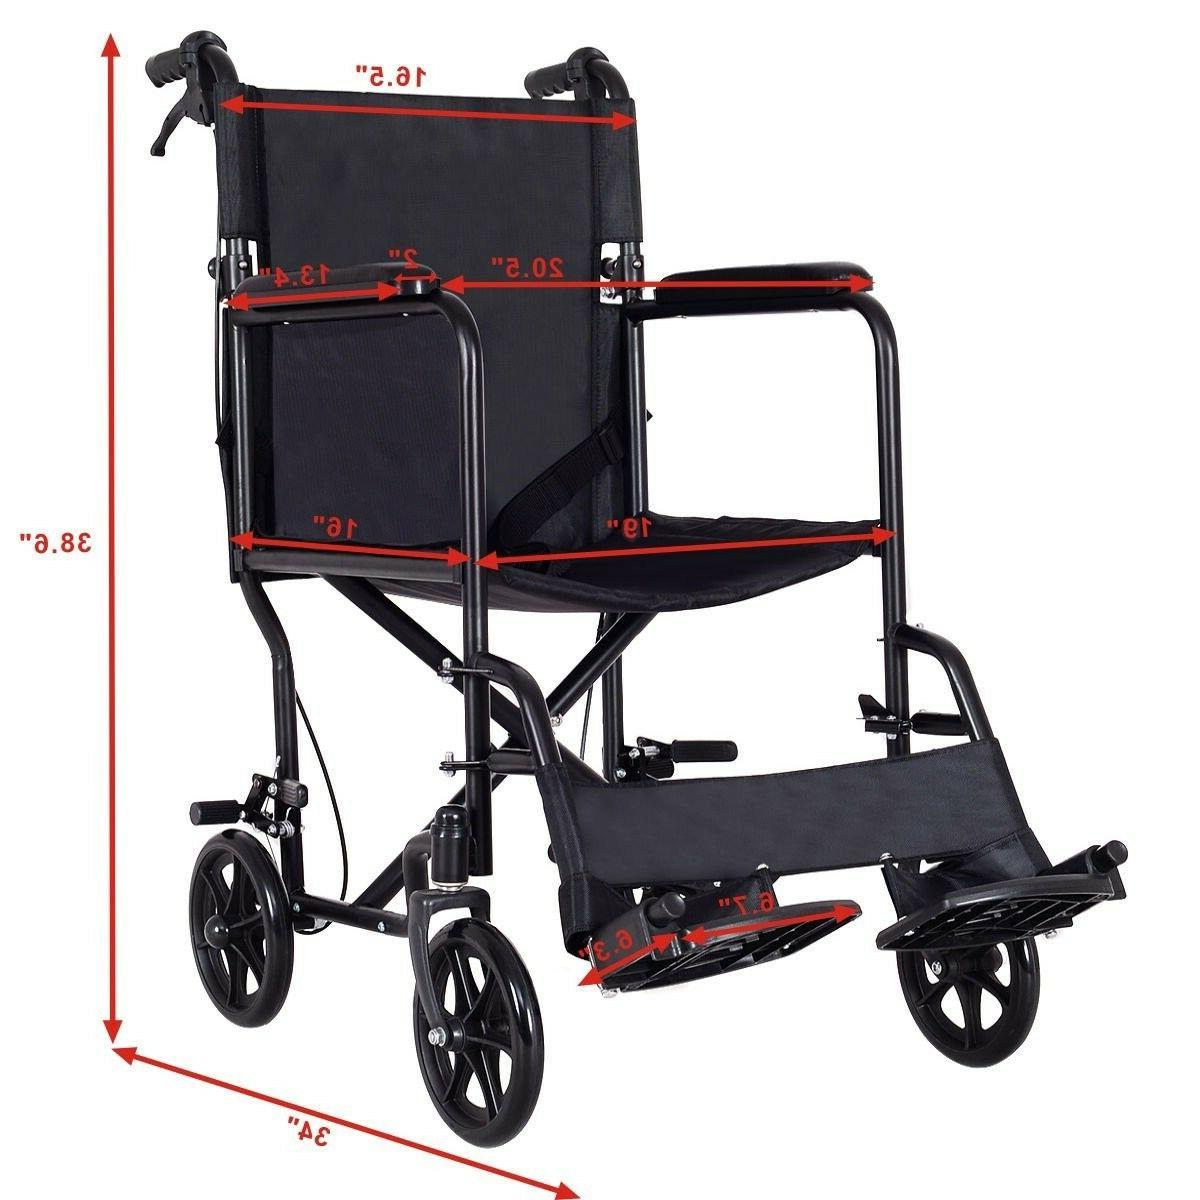 Foldable Lightweight Manual Medical Wide Hand Brakes